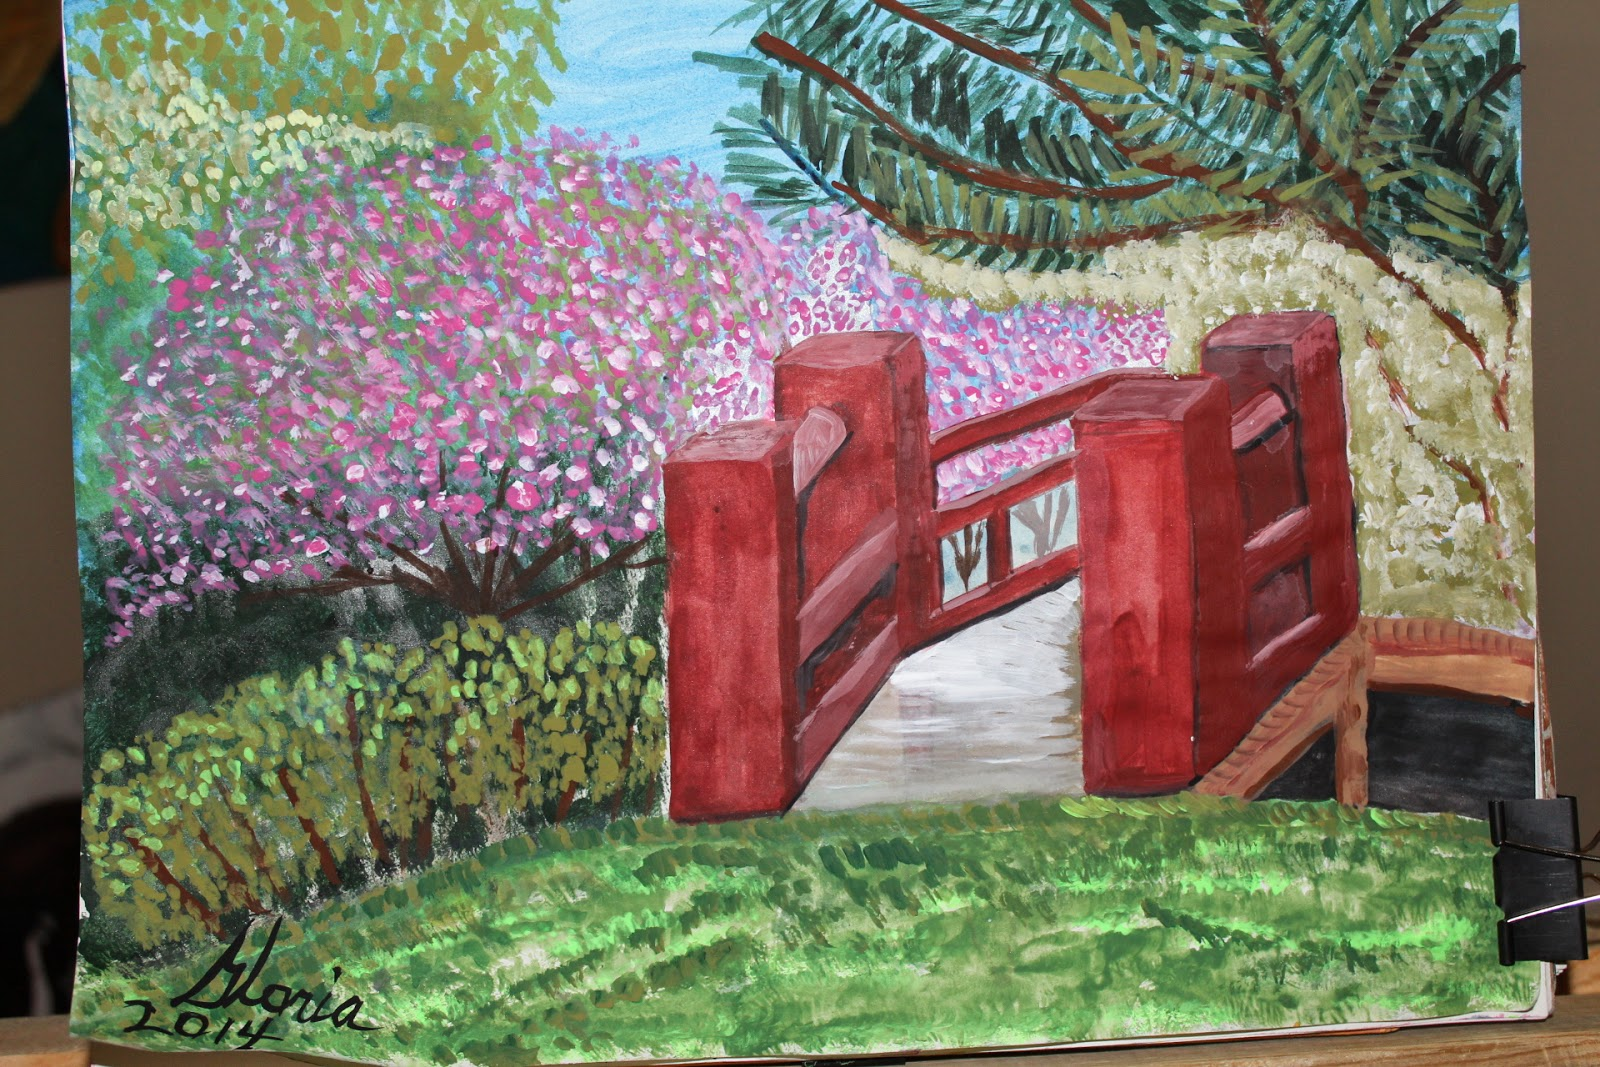 Japanese walkover bridge sketch by Gloria Poole of Missouri,23-Apr-2014; acrylics